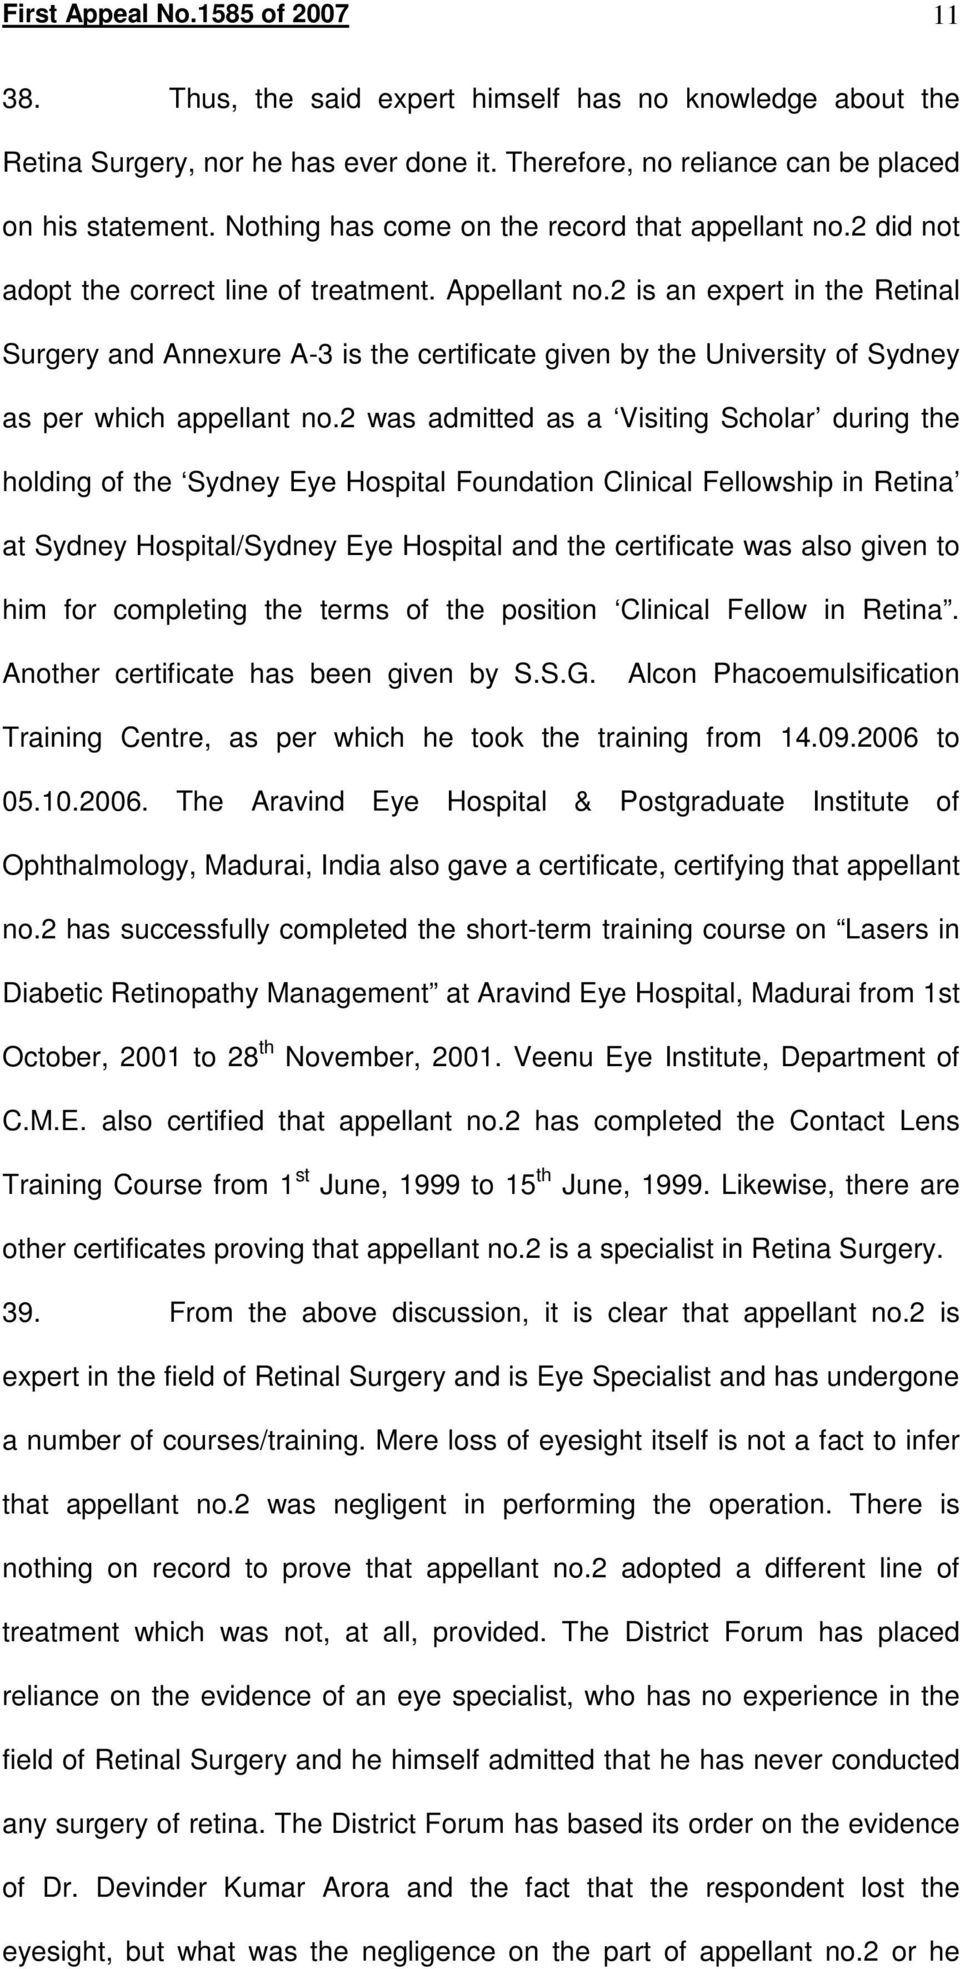 2 is an expert in the Retinal Surgery and Annexure A-3 is the certificate given by the University of Sydney as per which appellant no.